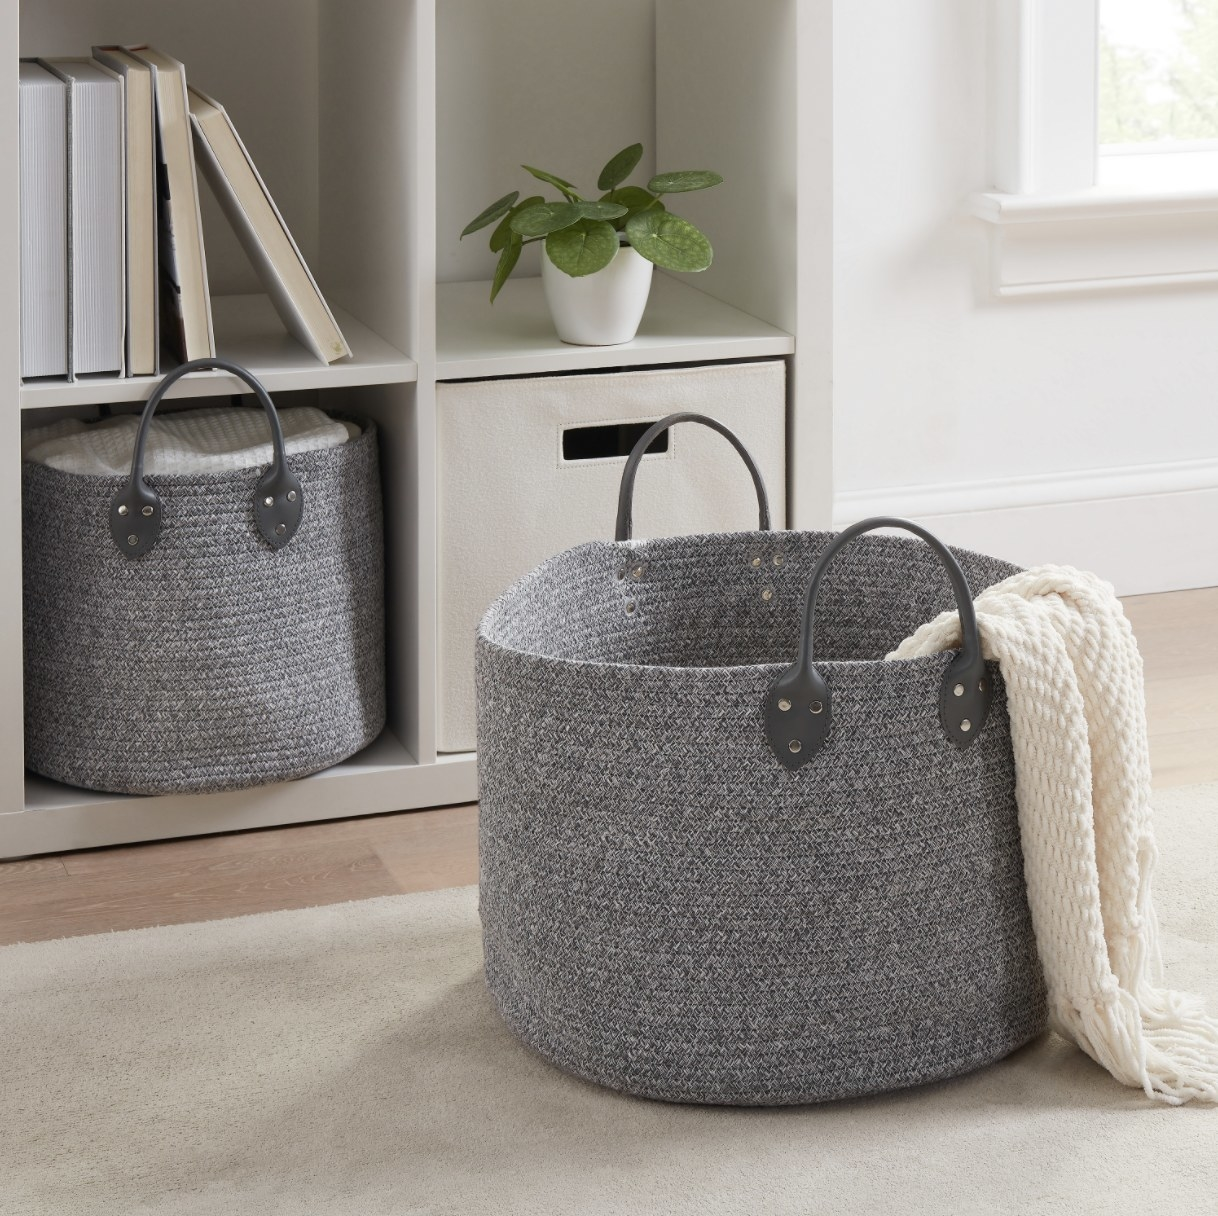 The gray baskets